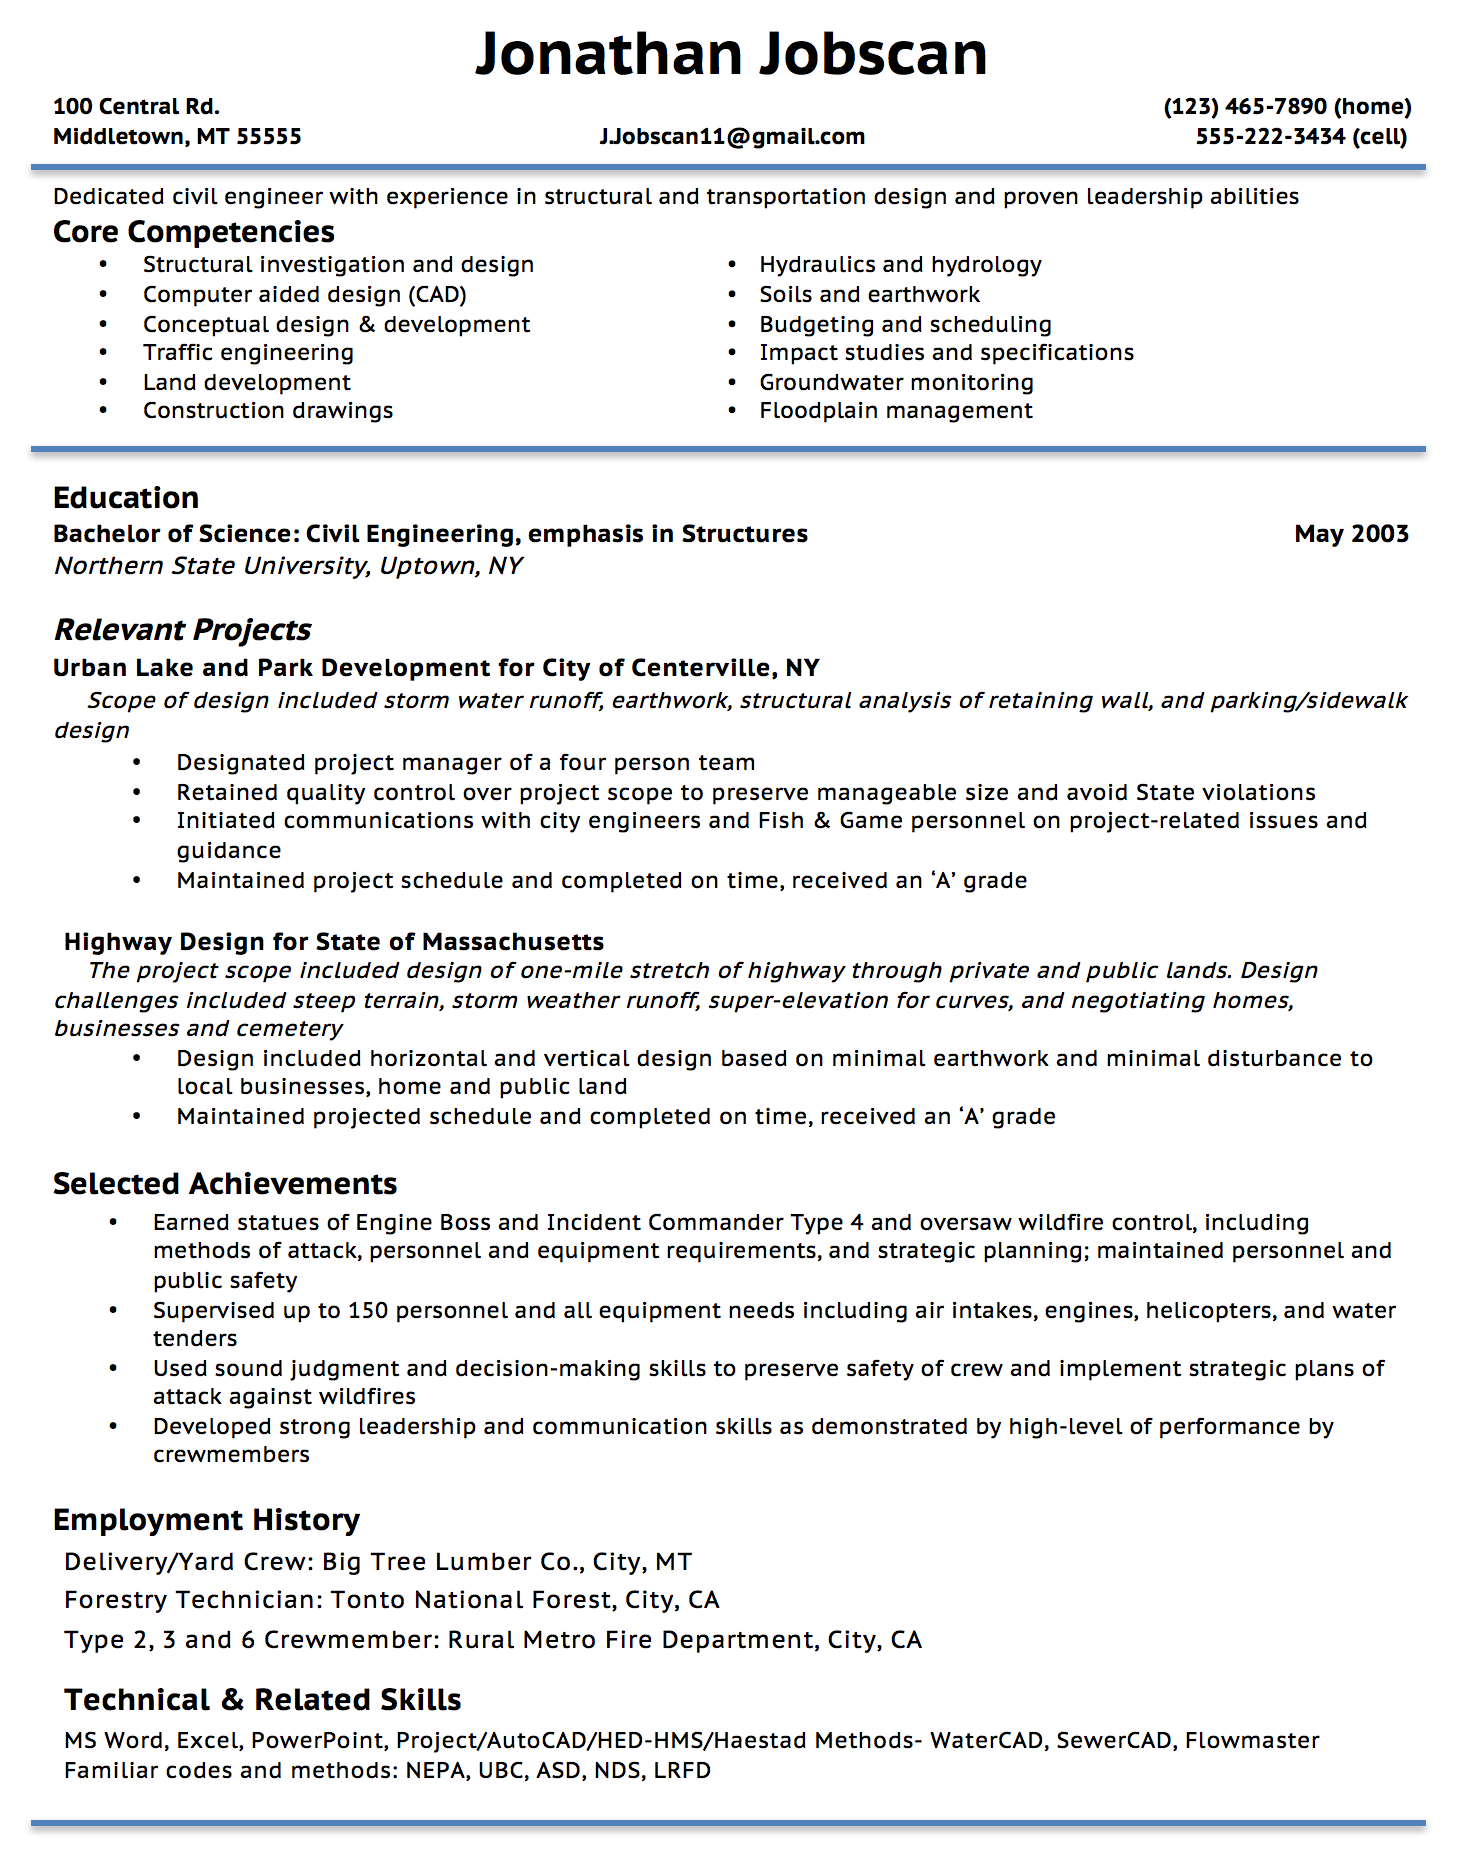 Opposenewapstandardsus  Splendid Resume Writing Guide  Jobscan With Foxy Example Of A Functional Resume Format With Lovely Resume Paper Color Also Profile Statement For Resume In Addition Openoffice Resume Template And Basic Resume Cover Letter As Well As Combination Resume Format Additionally Accountant Resumes From Jobscanco With Opposenewapstandardsus  Foxy Resume Writing Guide  Jobscan With Lovely Example Of A Functional Resume Format And Splendid Resume Paper Color Also Profile Statement For Resume In Addition Openoffice Resume Template From Jobscanco